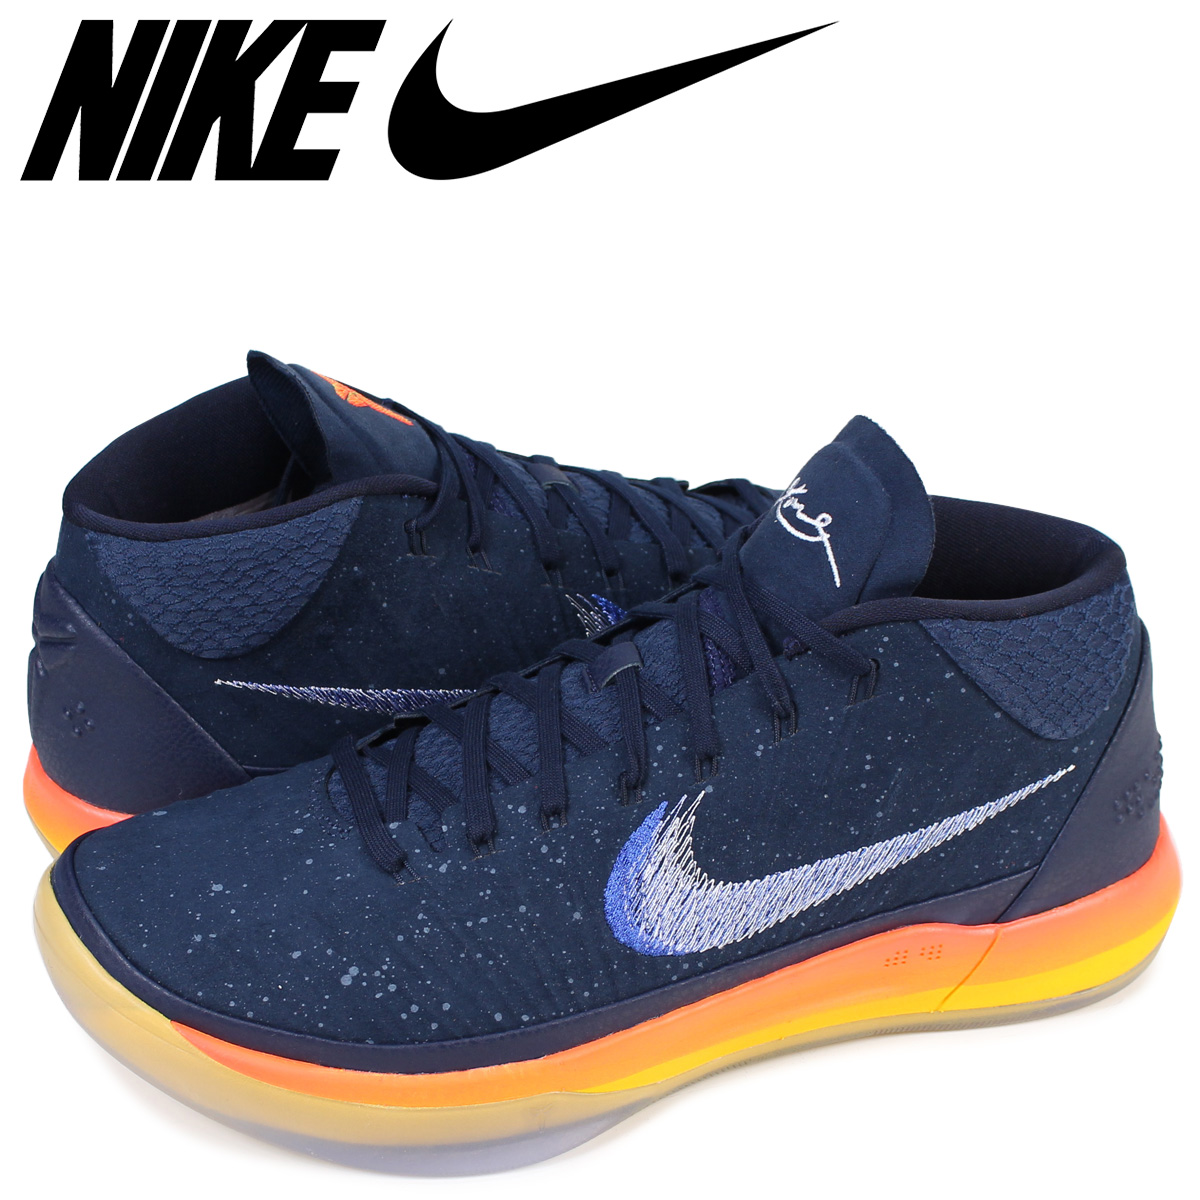 pick up 0166a dccfe NIKE KOBE AD EP Nike Corby sneakers 922,484-401 men's shoes navy [1711]